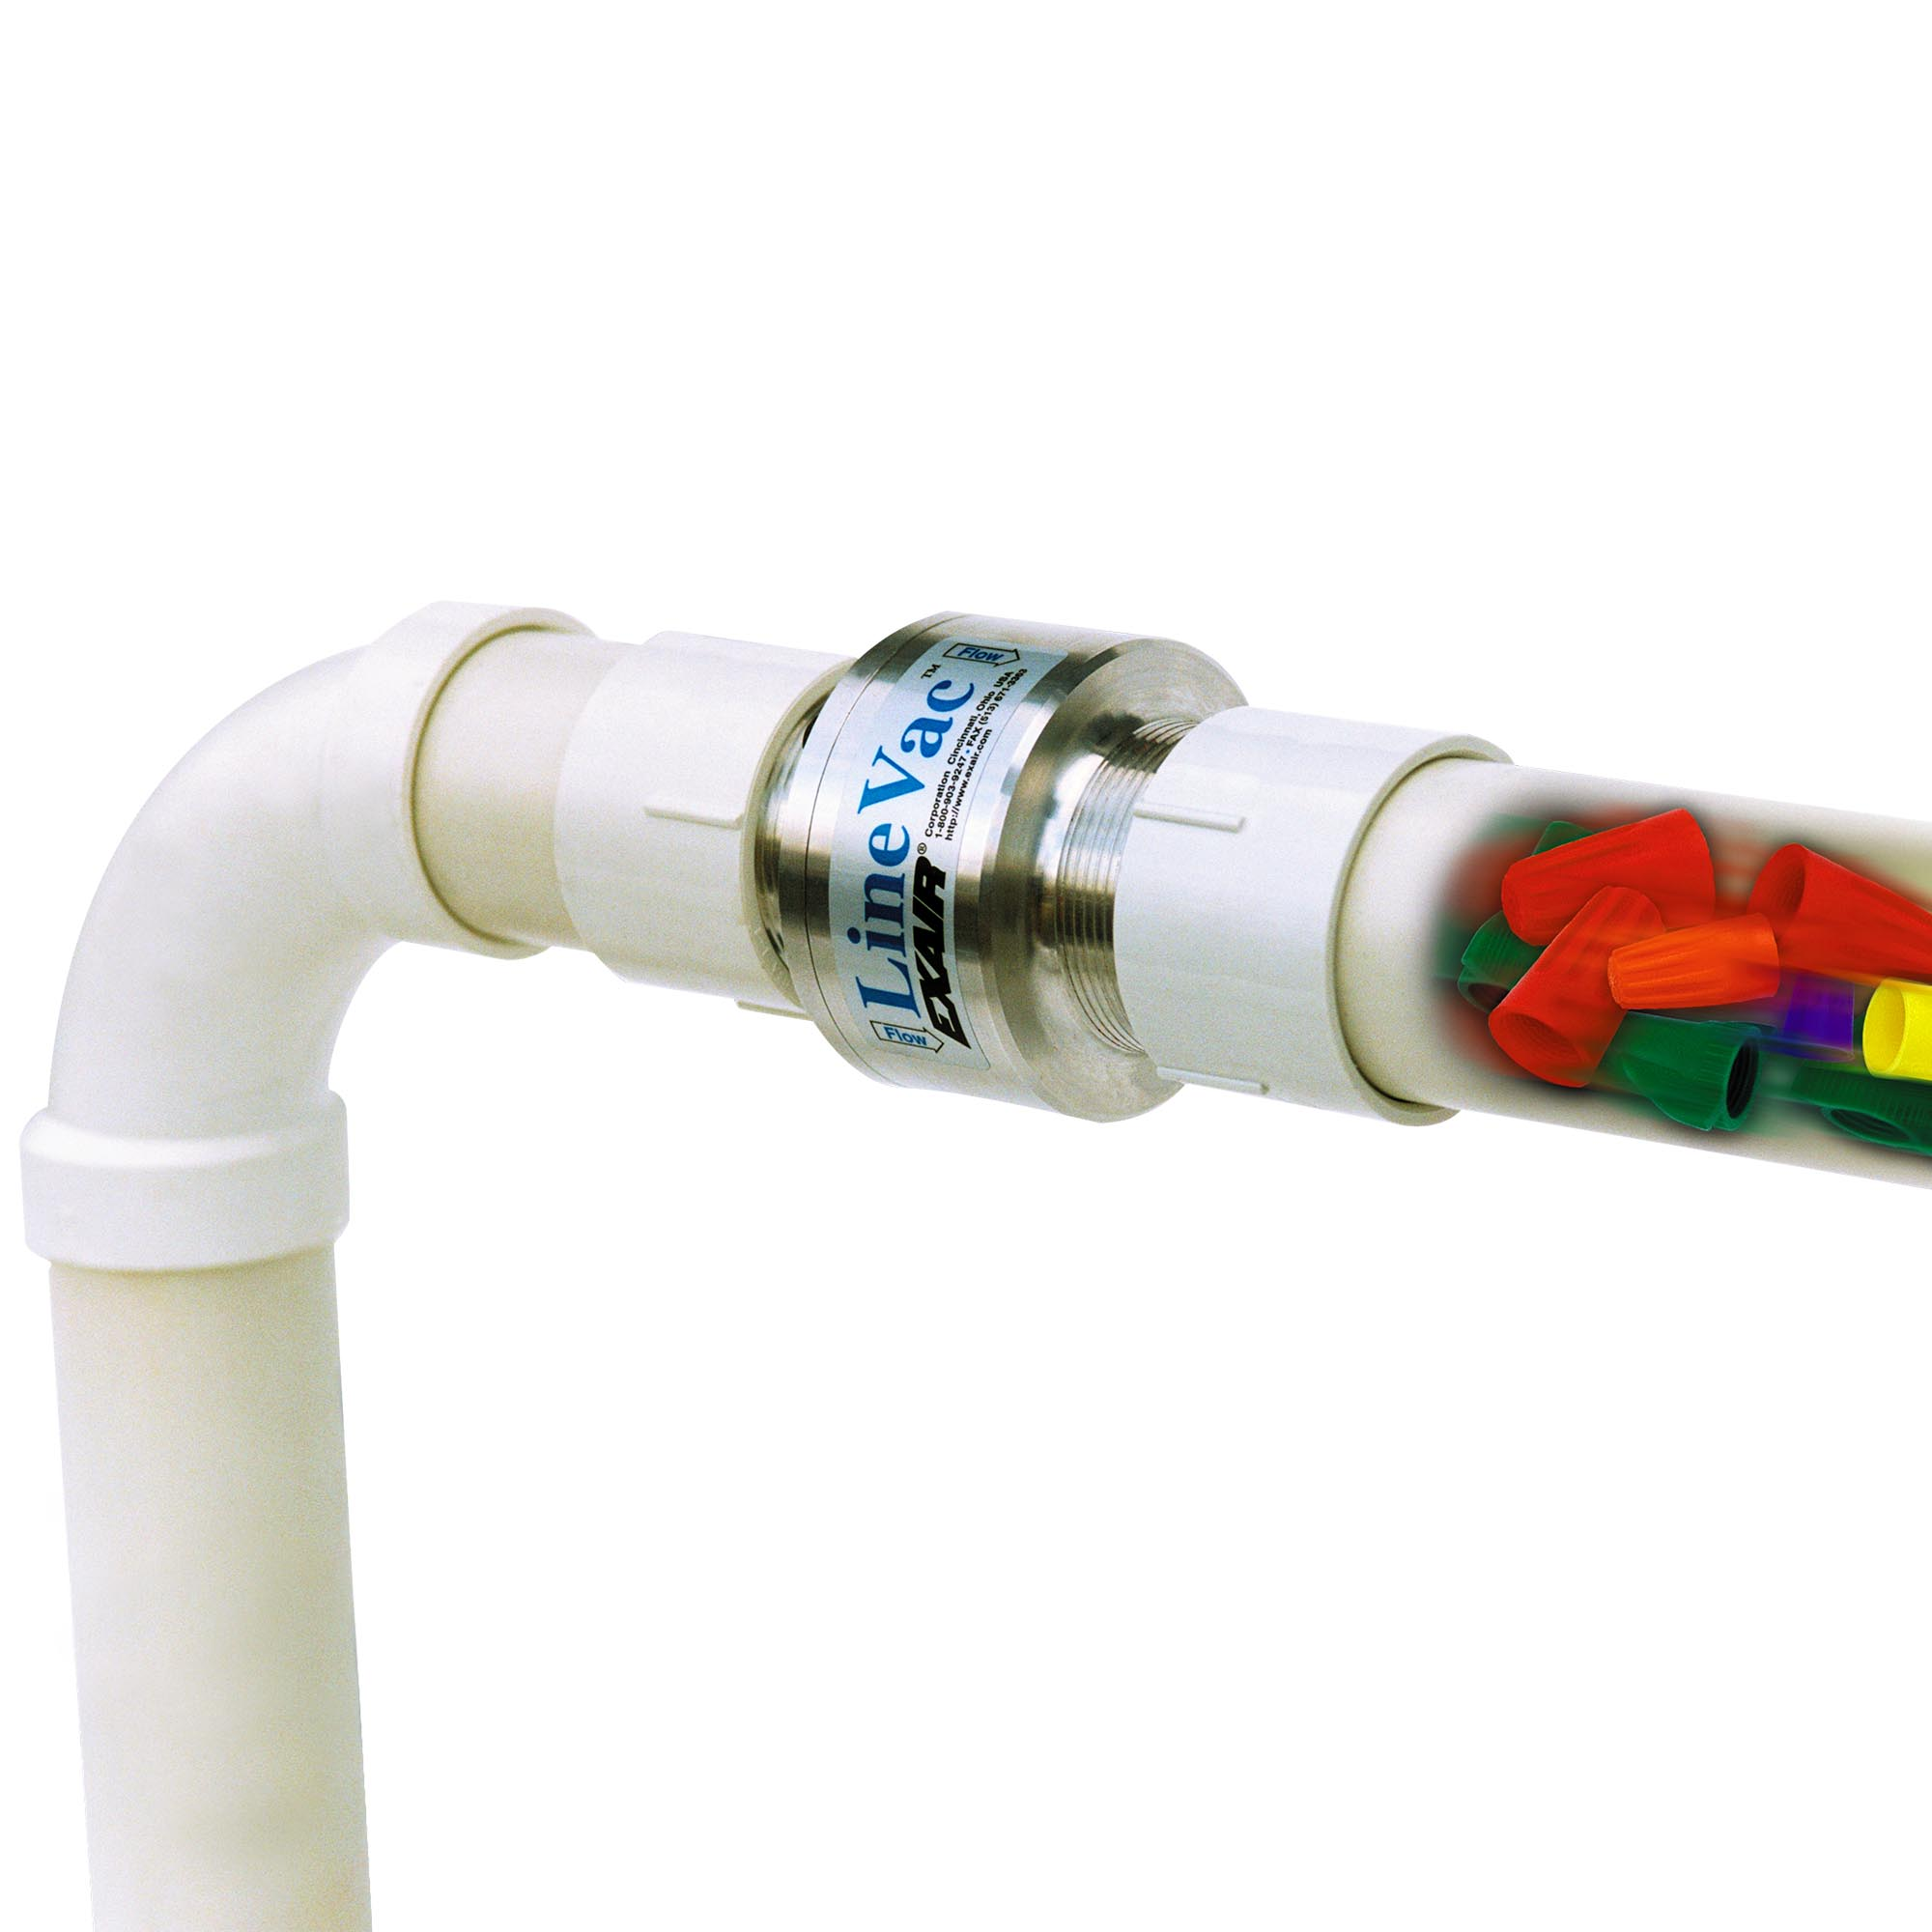 This Threaded Line Vac is conveying toy blocks through common PVC pipe.